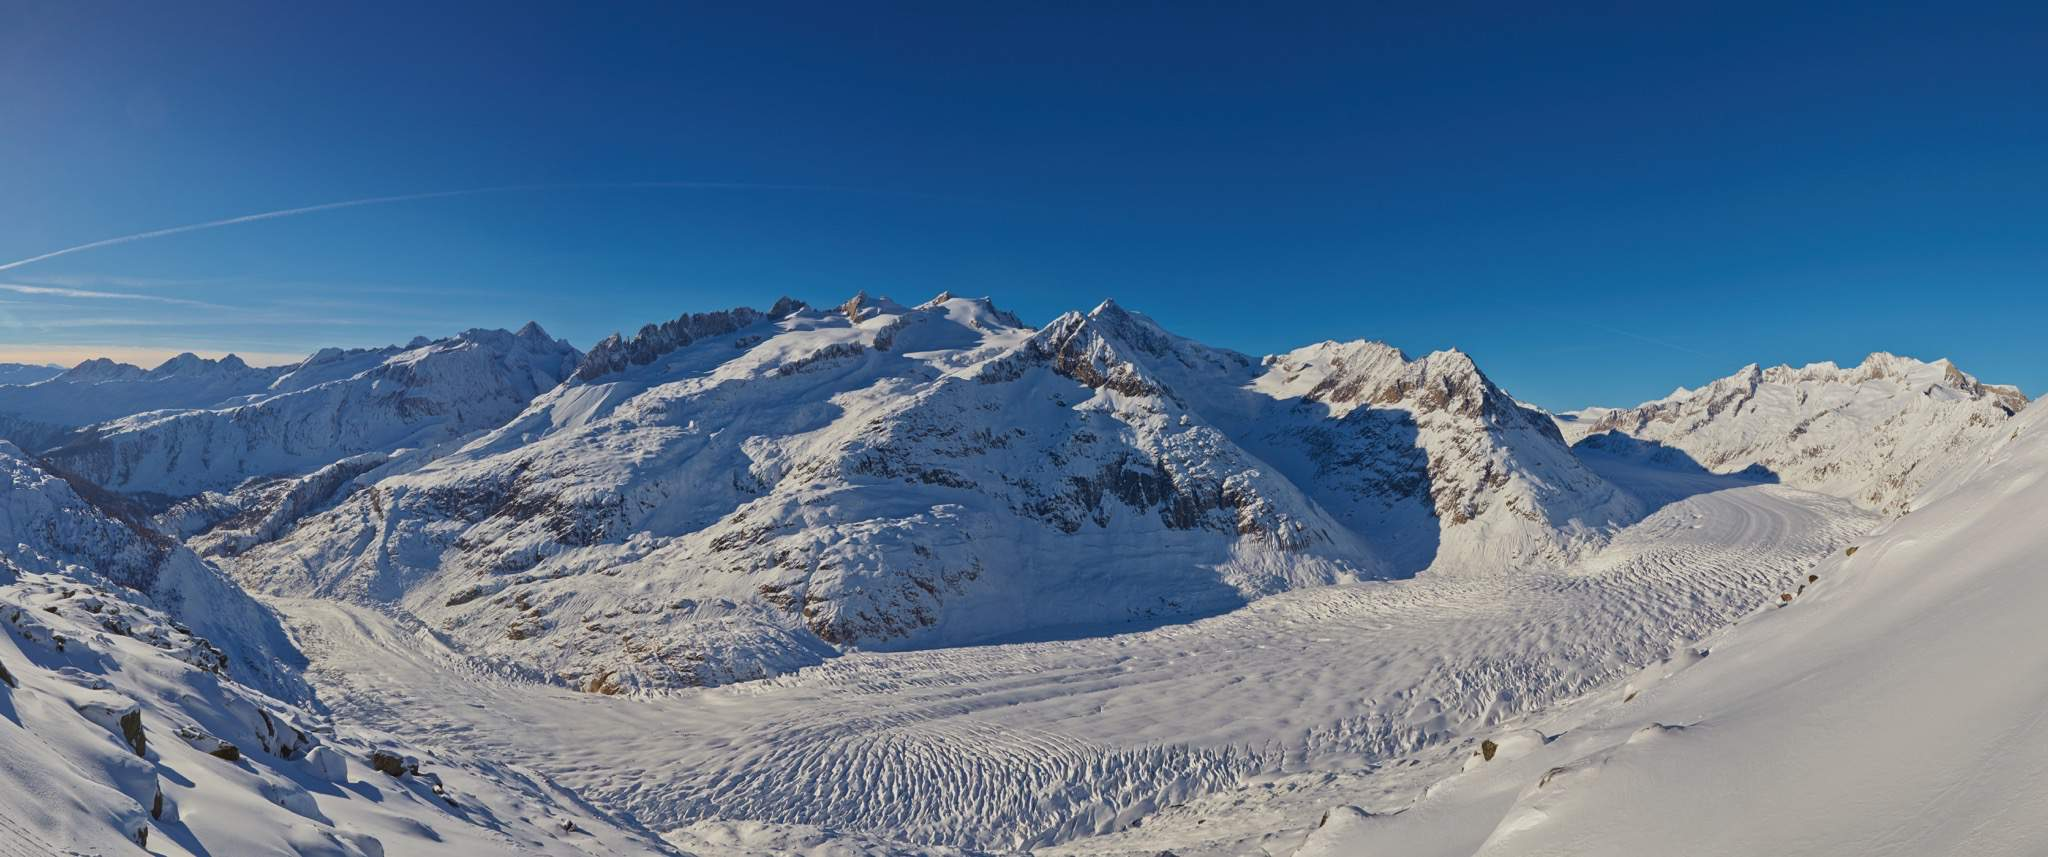 Aletsch Gletscher im Winter